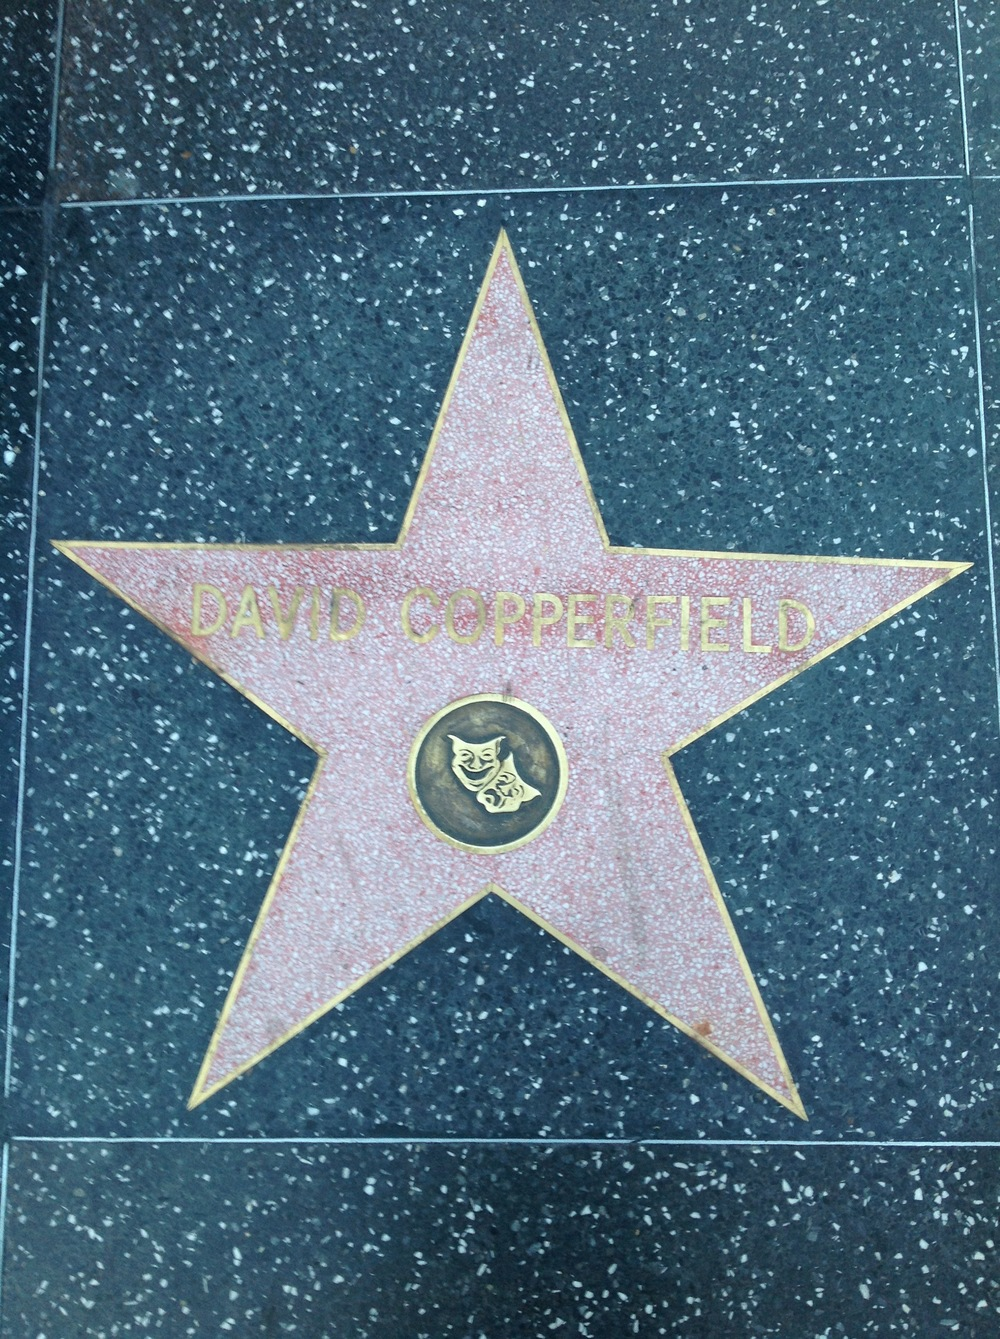 David Copperfield on the Walk of Fame